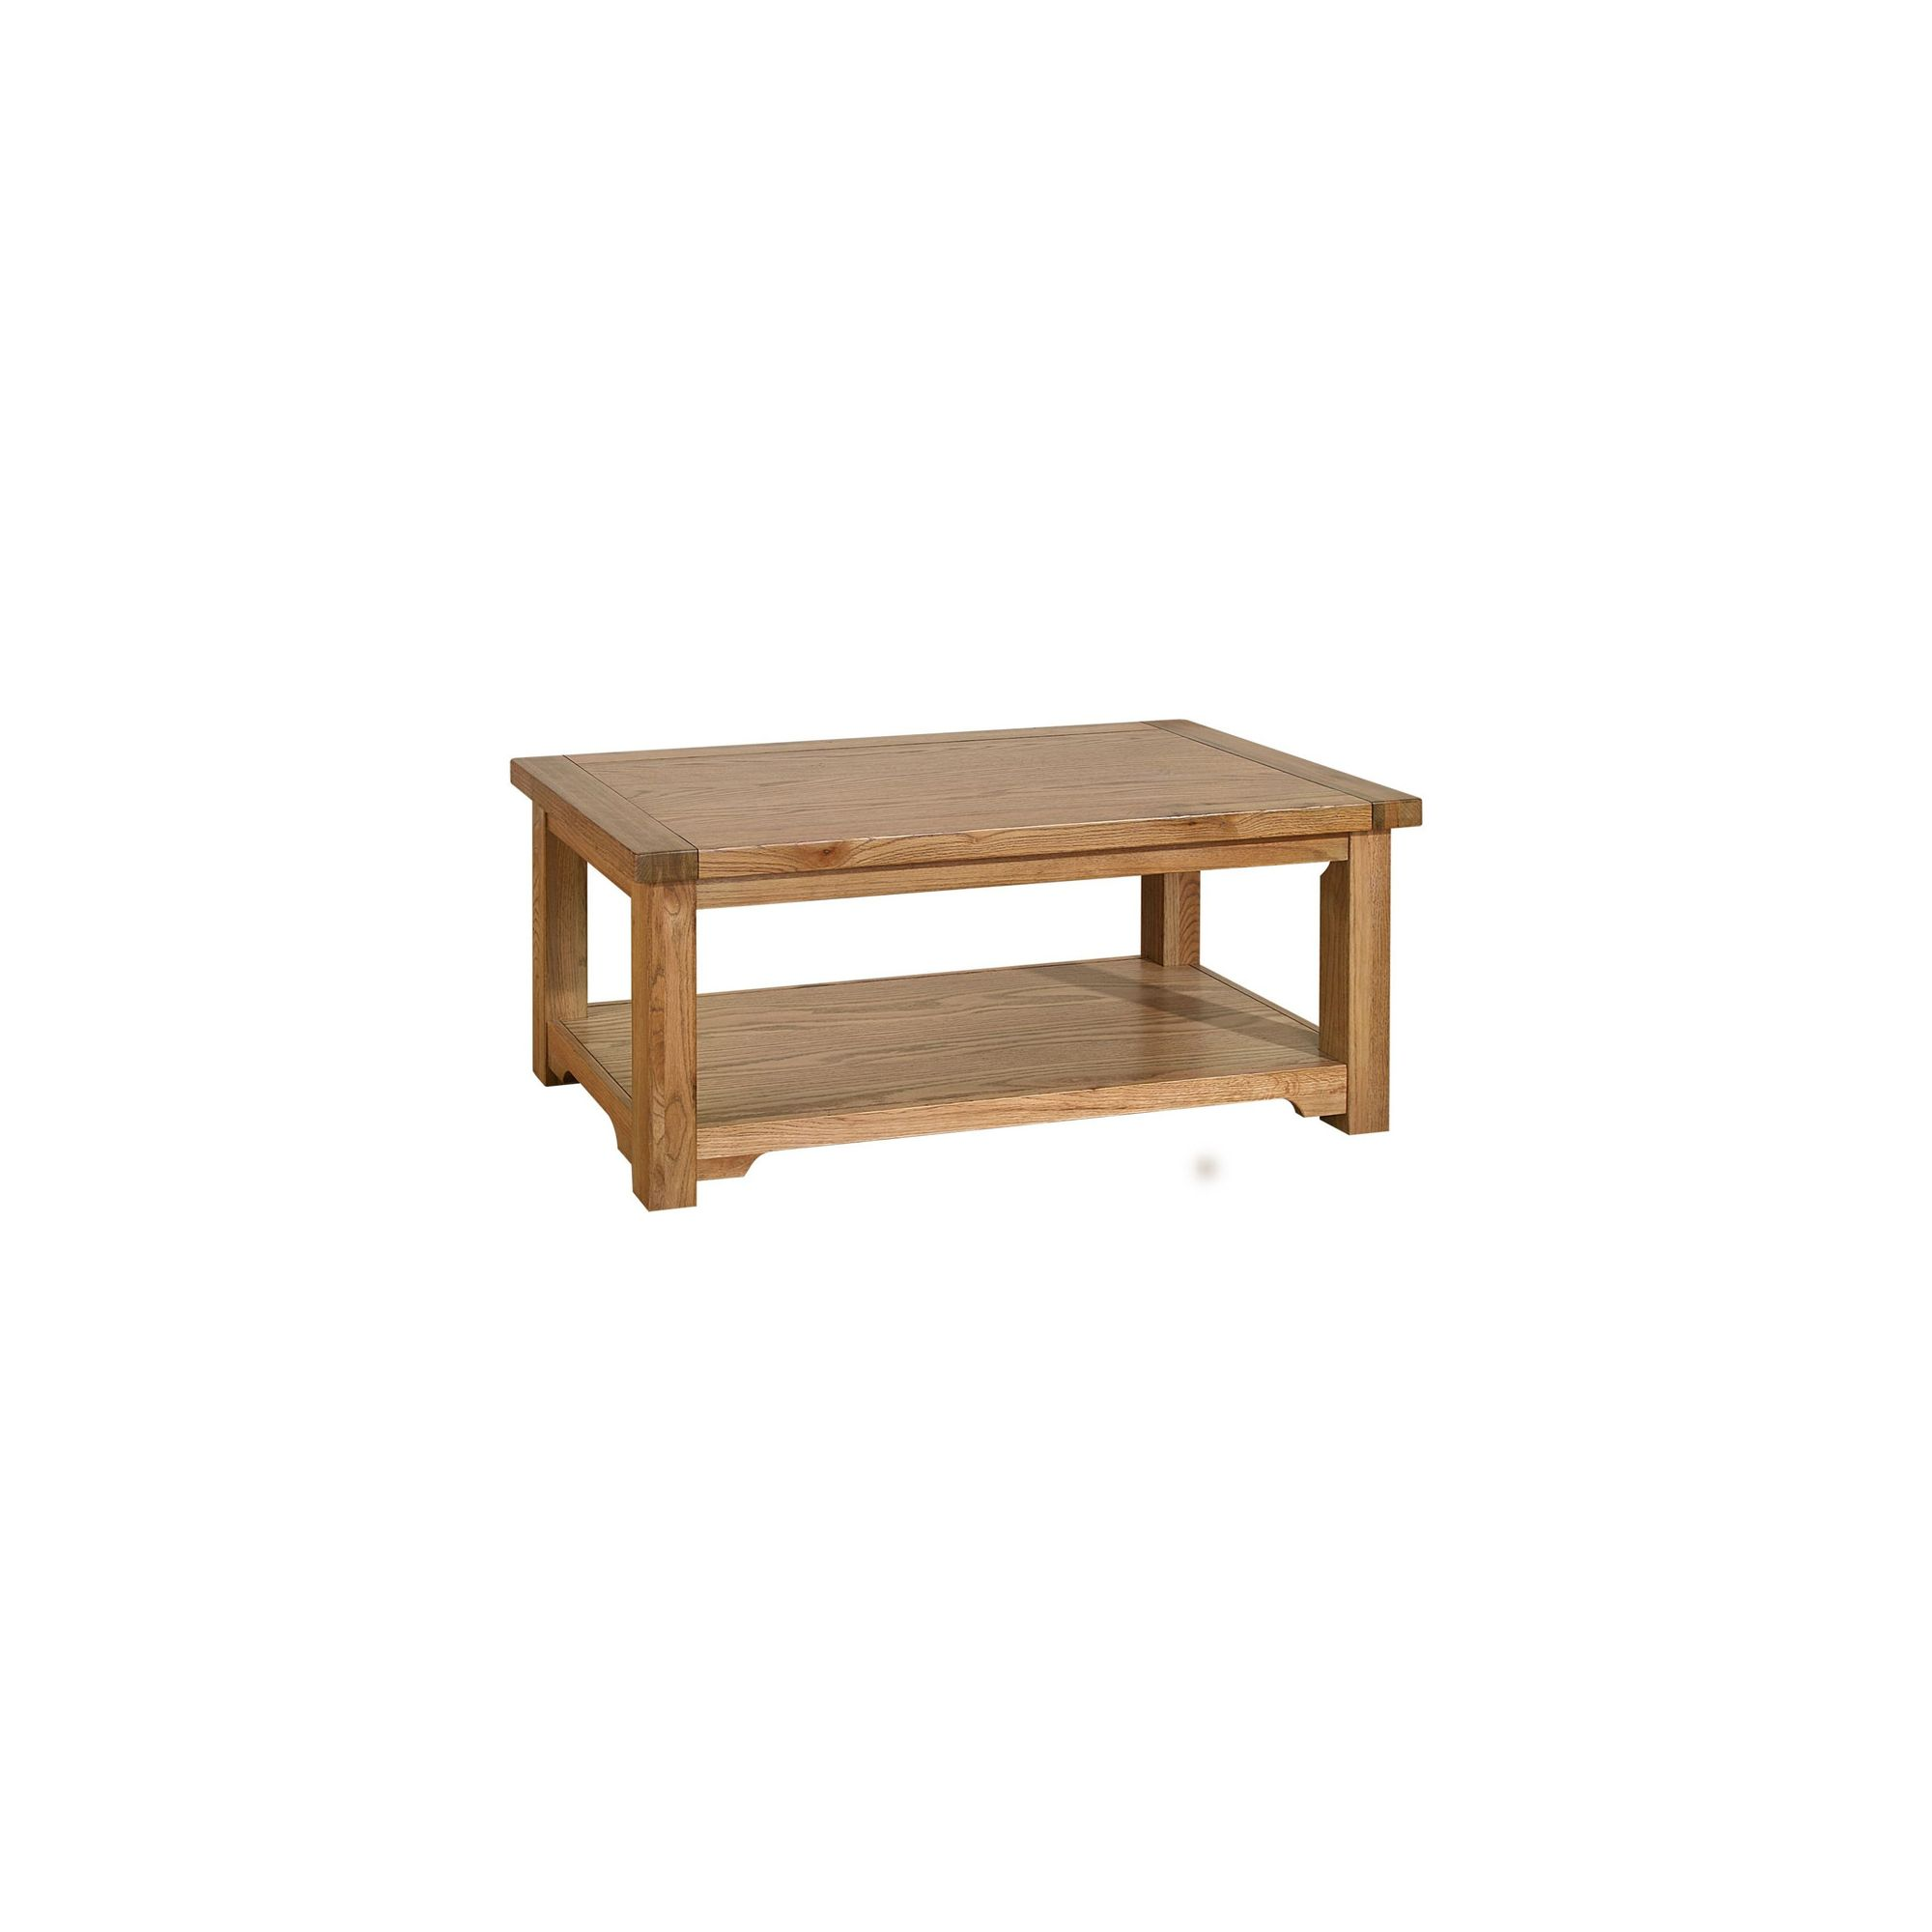 Kelburn Furniture Toulouse Coffee Table in Medium Oak Stain and Satin Lacquer at Tescos Direct